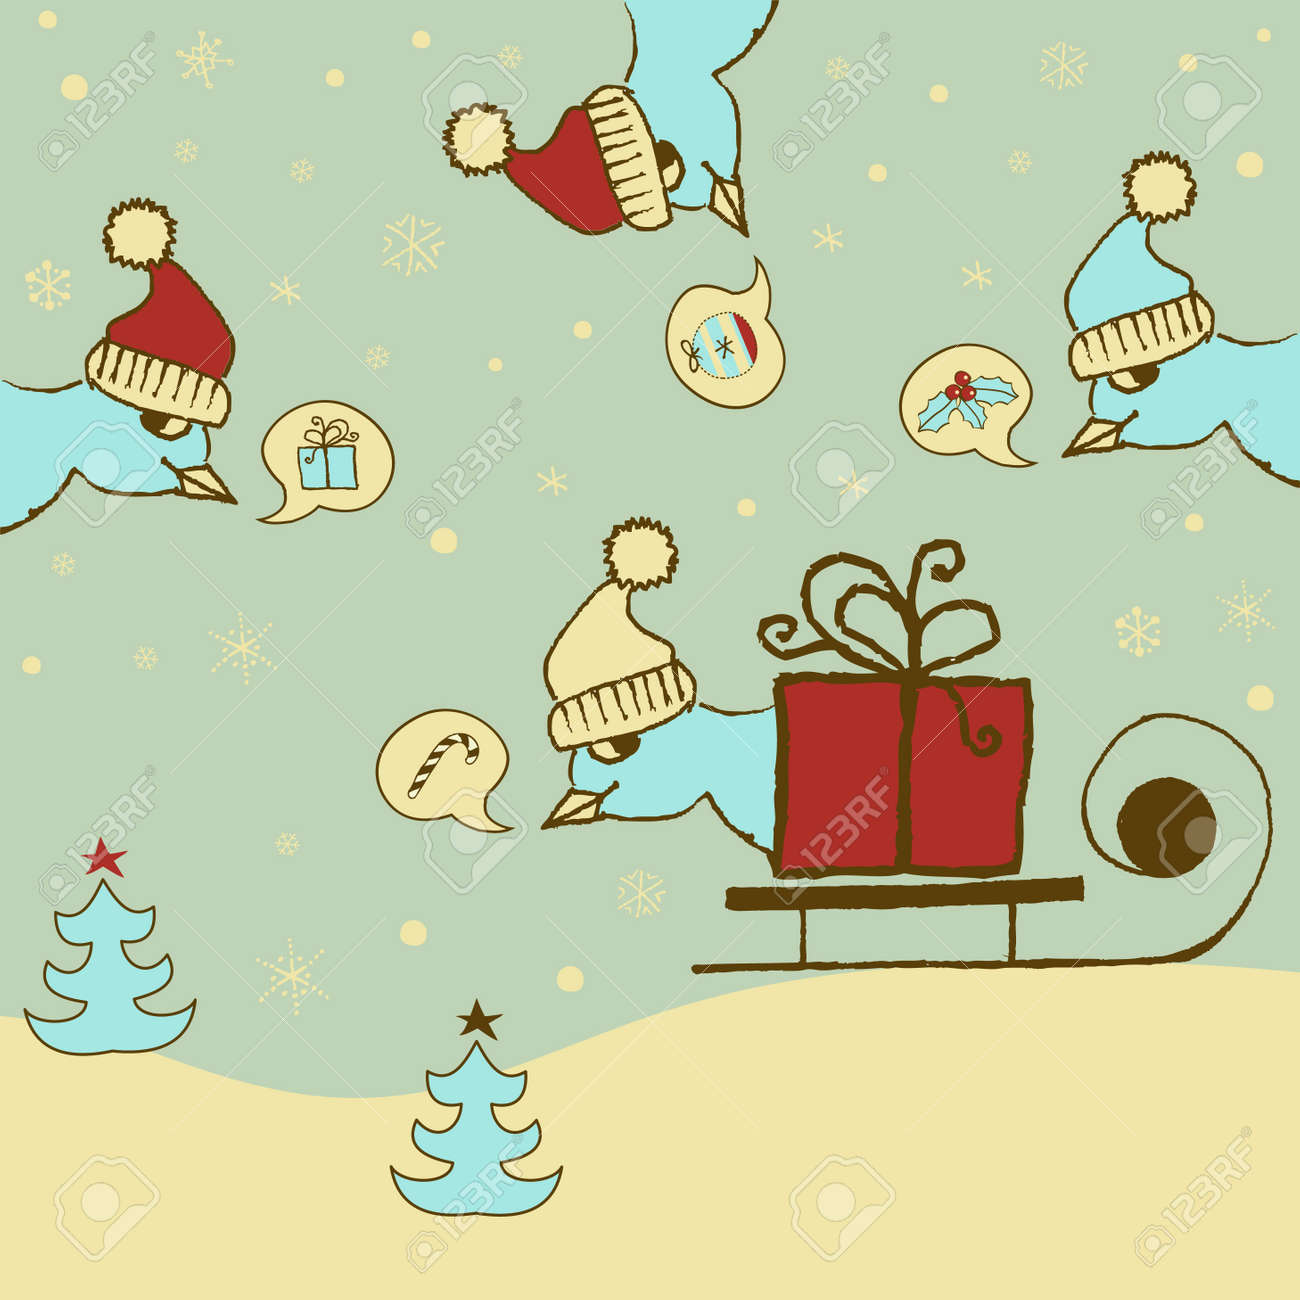 Cheerful Christmas Card With Naughty Birds Royalty Free Cliparts